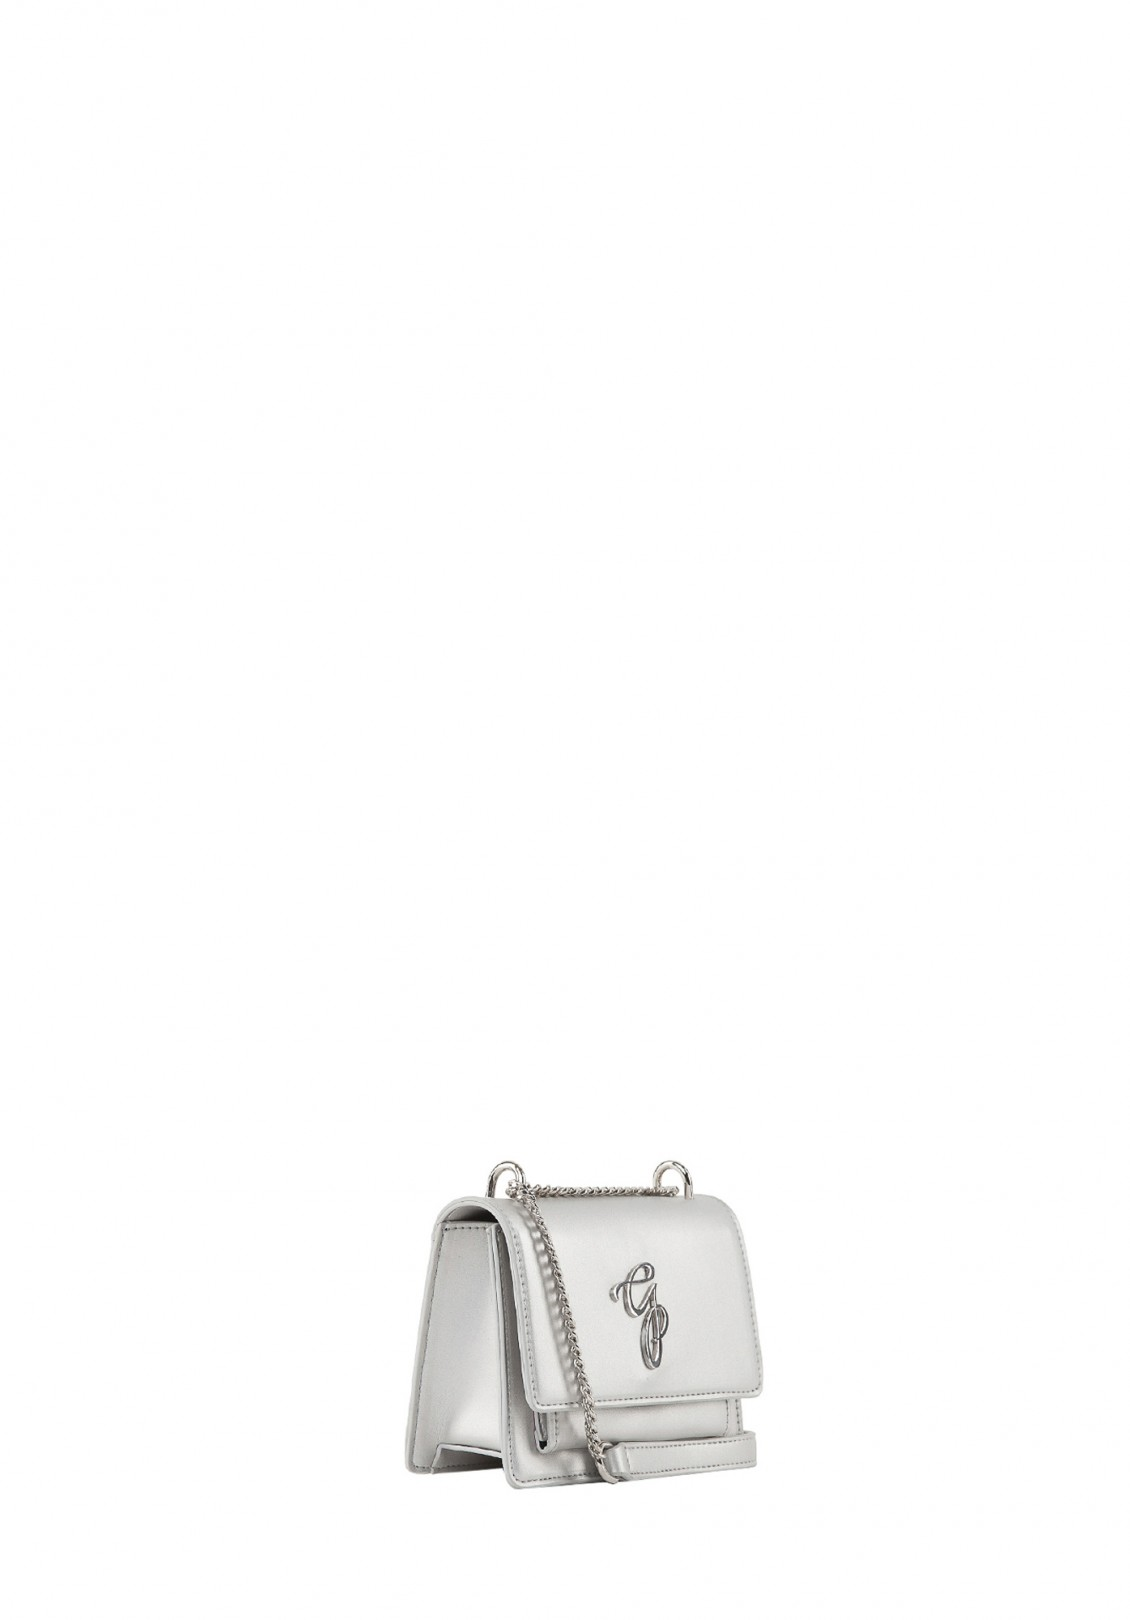 SHOULDER BAG - GBDA1203 - GAELLE PARIS